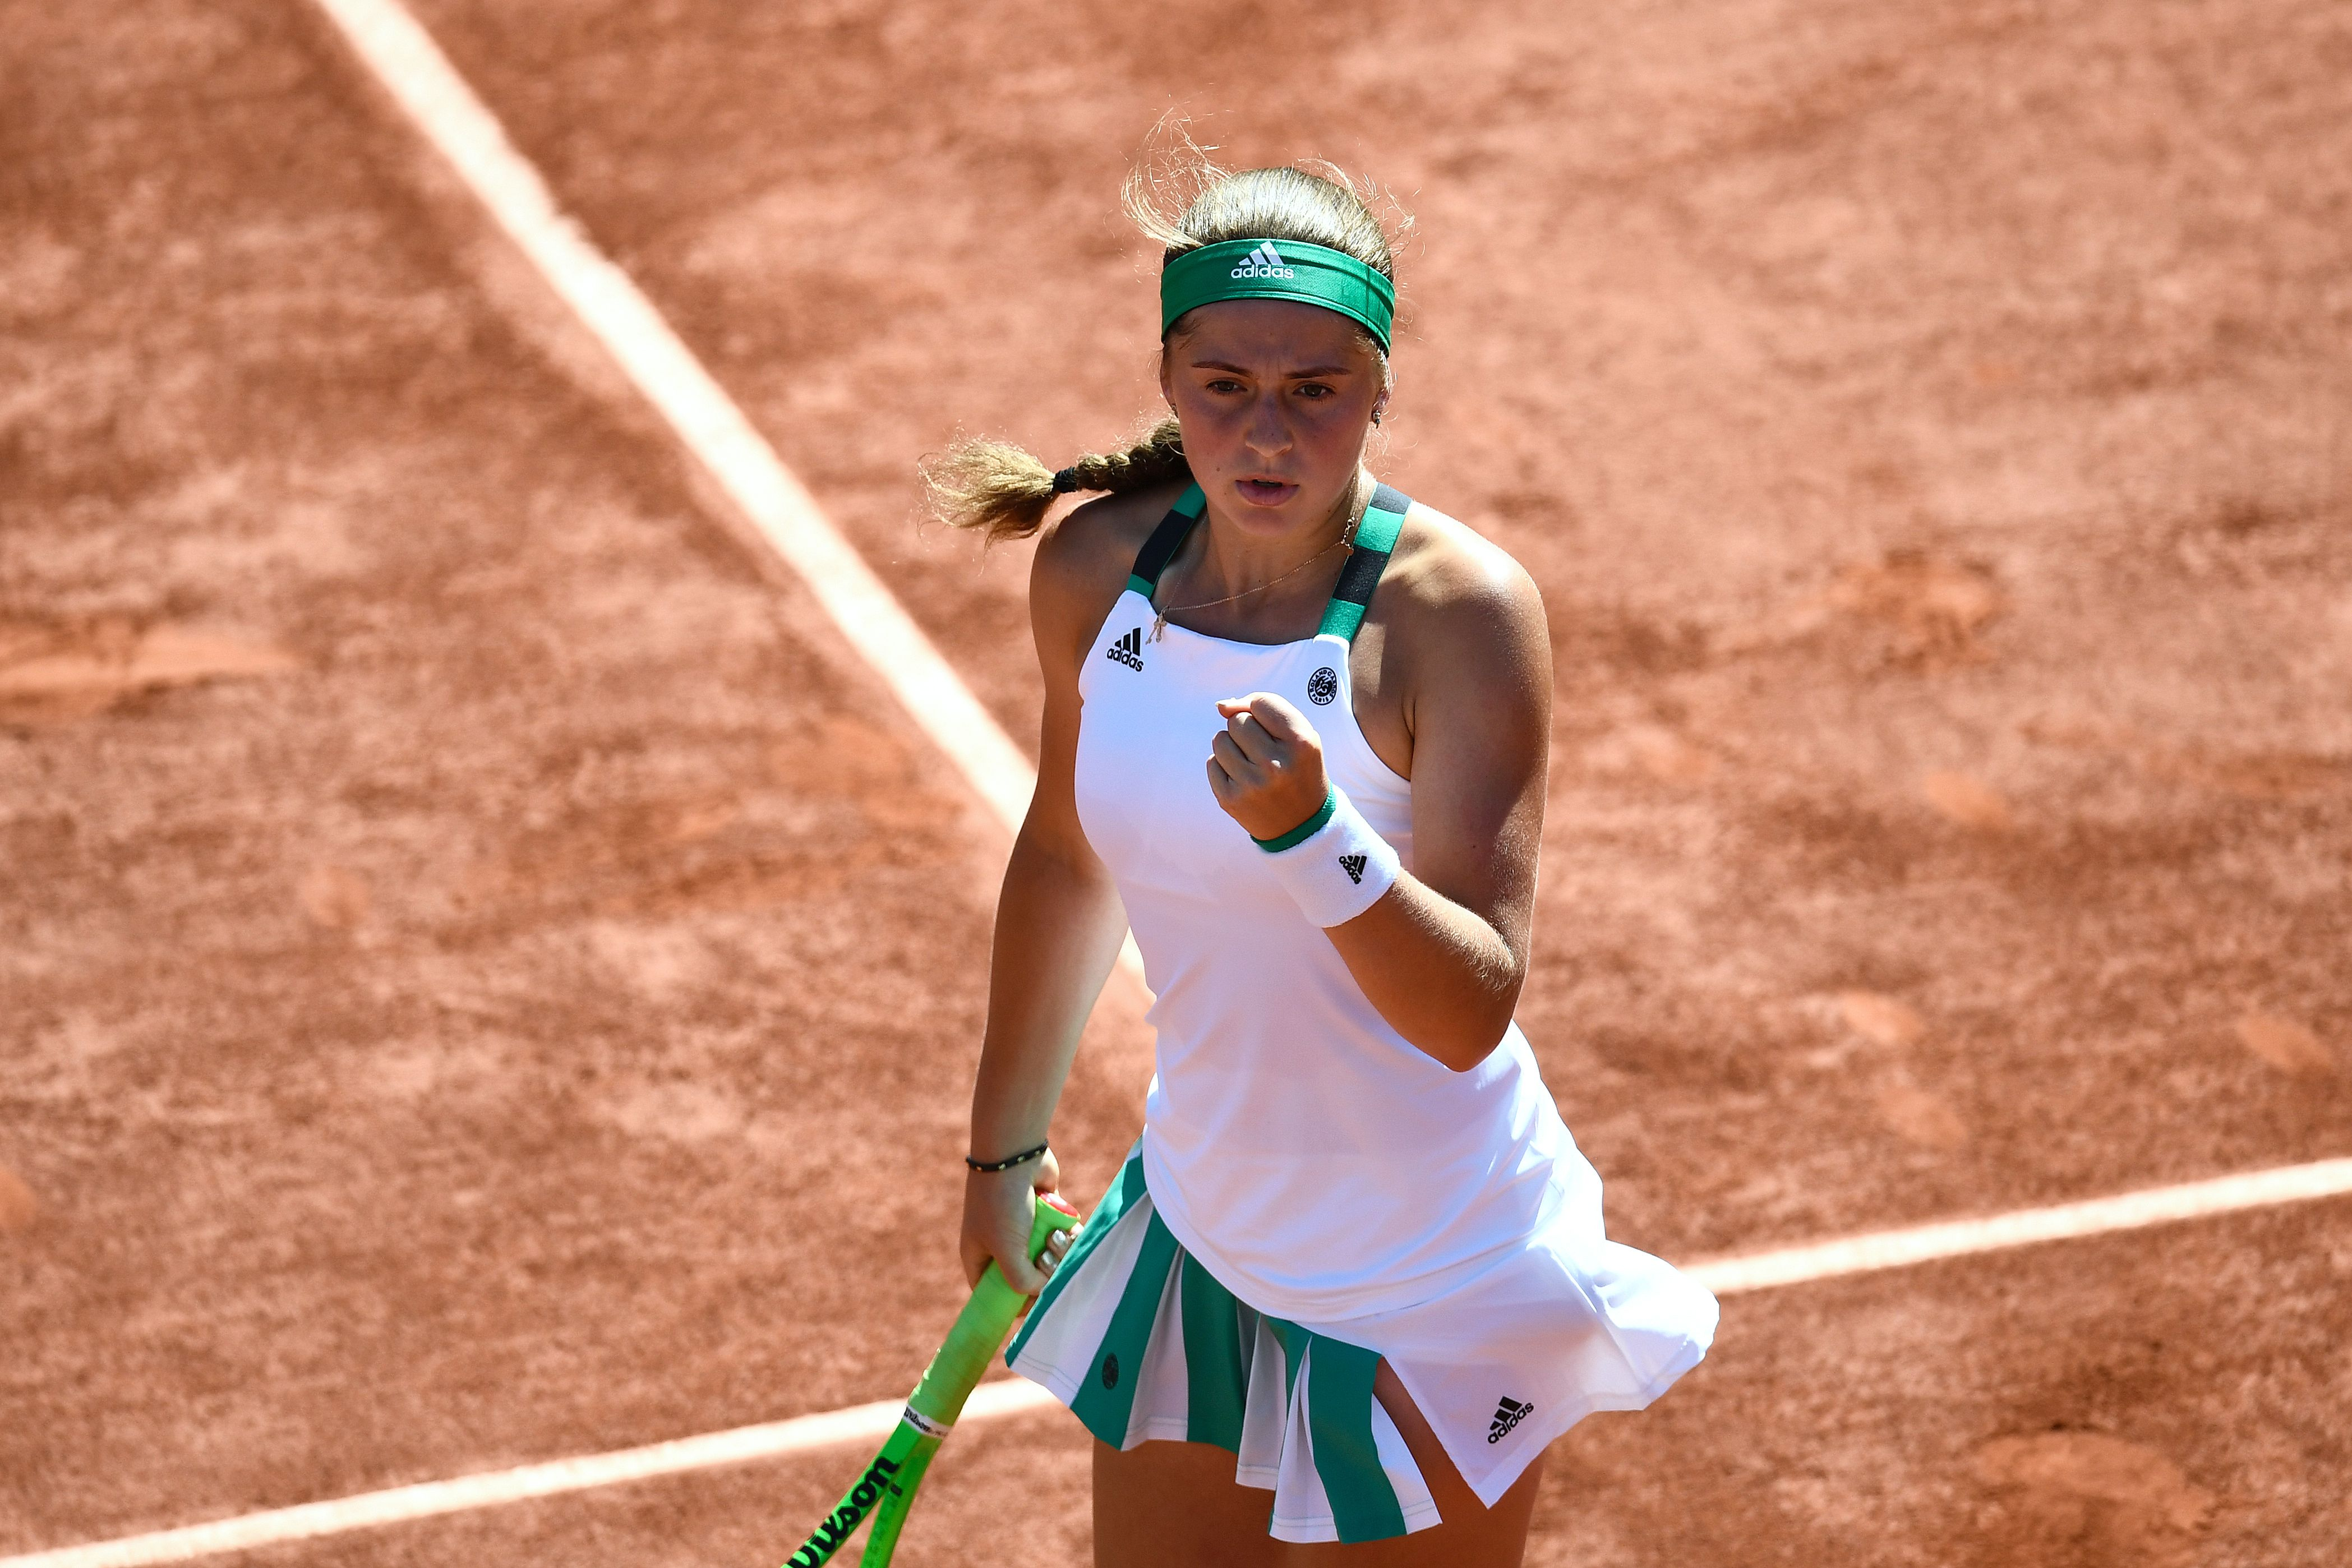 Latvia's Jelena Ostapenko celebrates after scoring a point during her semifinal tennis match against Switzerland's Timea Bacsinszky at the Roland Garros 2017 French Open on June 8, 2017 in Paris. / AFP PHOTO / CHRISTOPHE SIMON (Photo credit should read CHRISTOPHE SIMON/AFP/Getty Images)